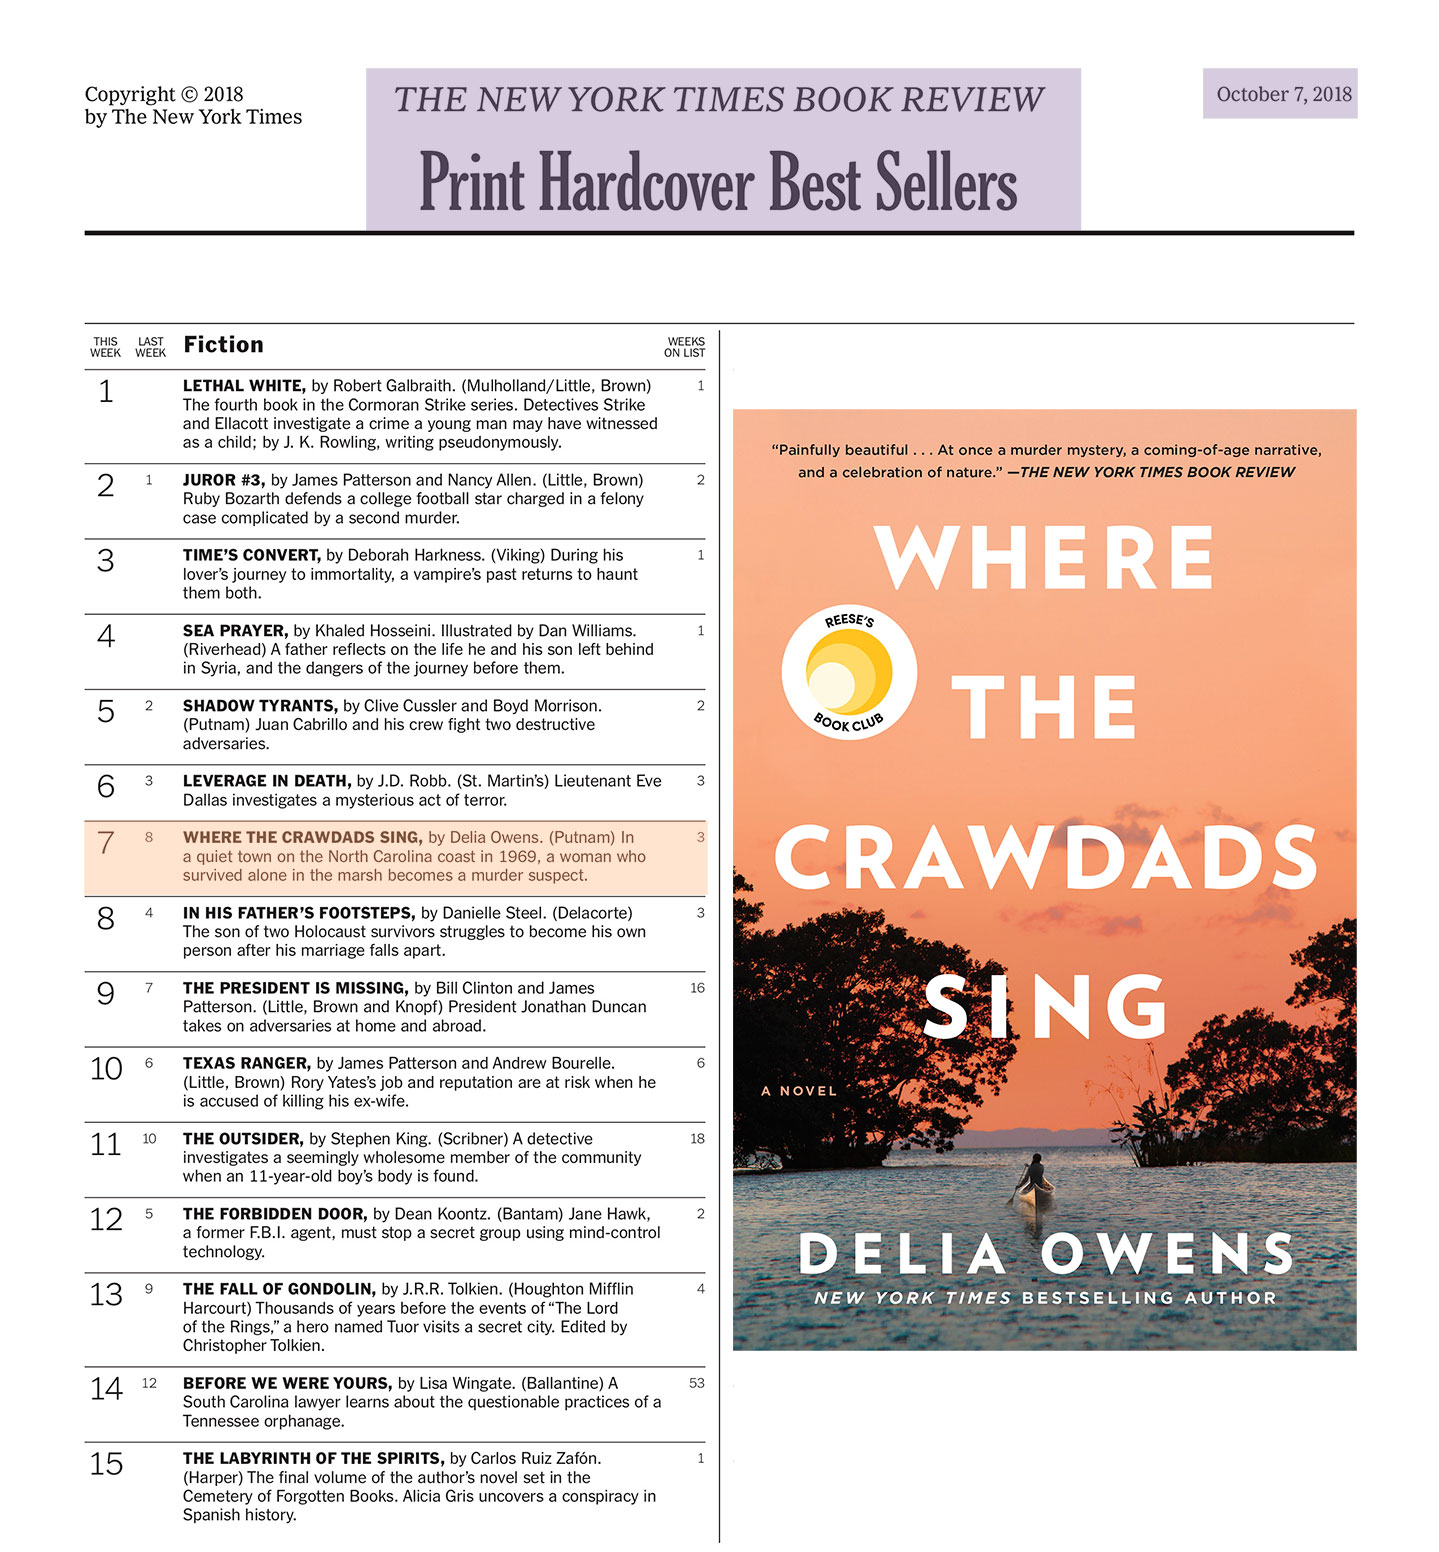 A version of this list appears in the October 7, 2018 issue of The New York Times Book Review. Rankings reflect sales for the week ending September 22, 2018.